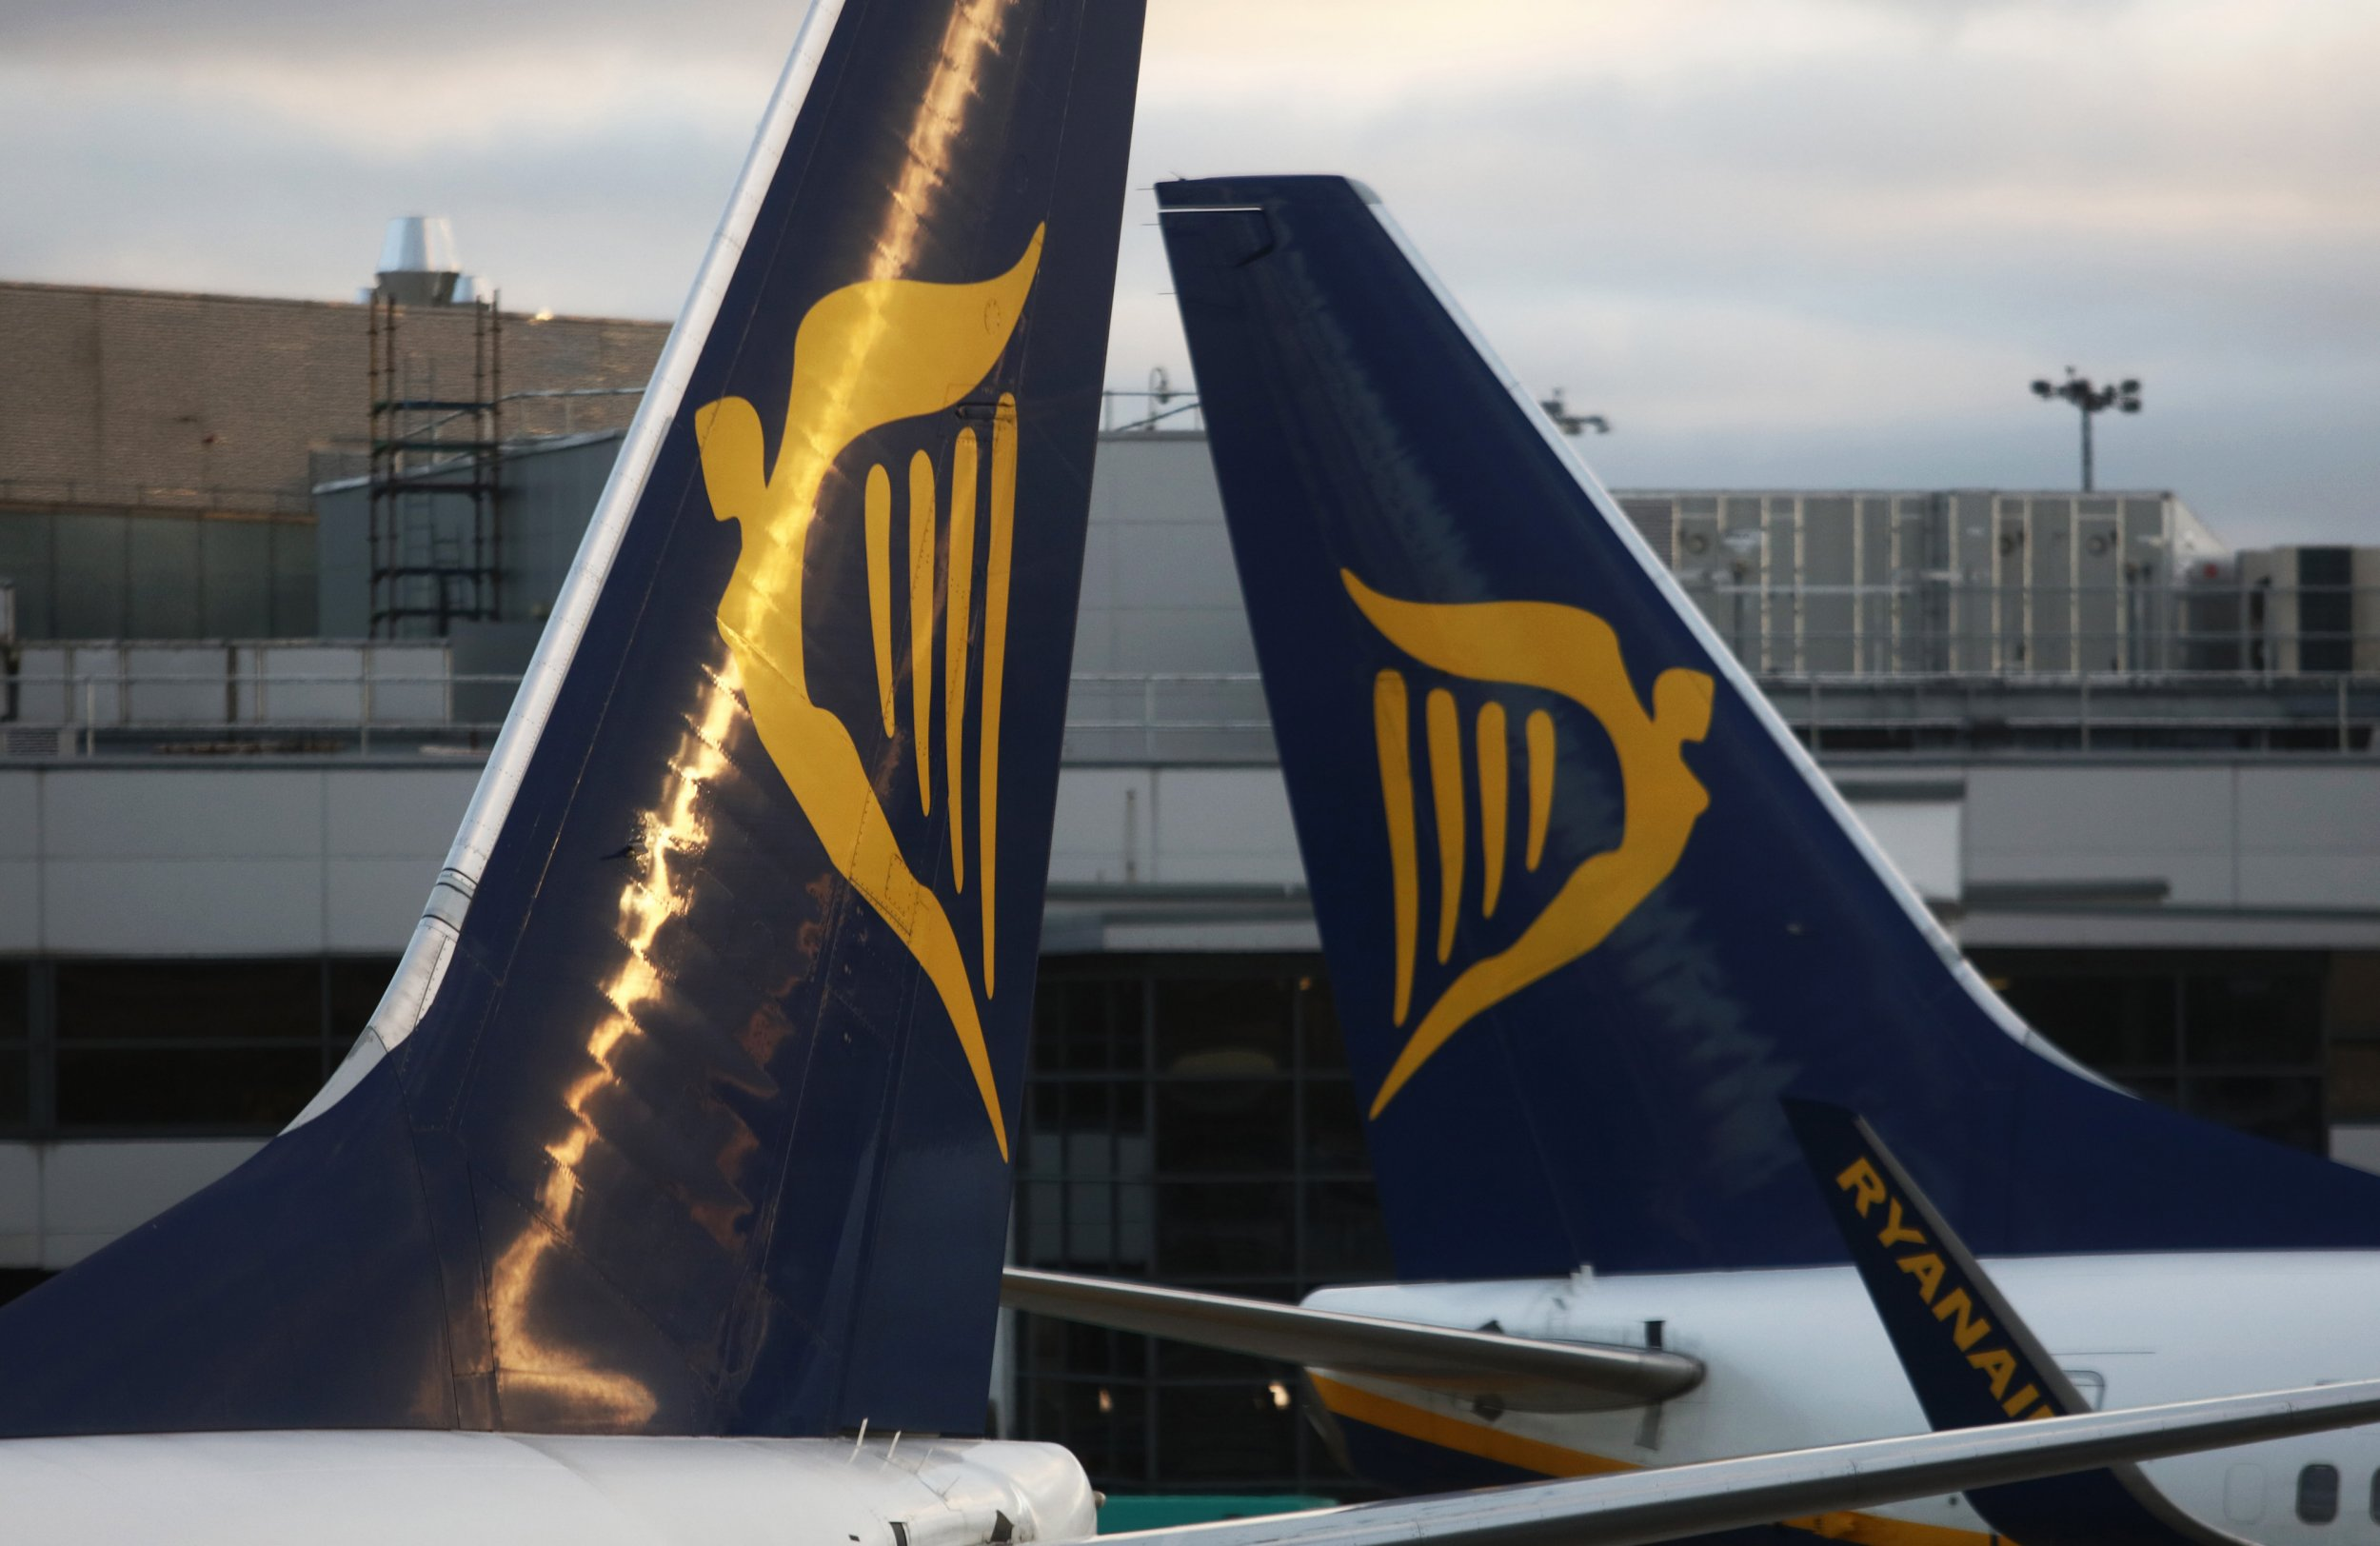 Tail fins of Ryanair Holdings Plc aircraft stand next to each other at Dublin Airport, operated by Dublin Airport Authority, in Dublin, Ireland, on Friday, Nov. 25, 2016. Ryanair provides low fare passenger airline services to destinations in Europe. Photographer: Chris Ratcliffe/Bloomberg via Getty Images